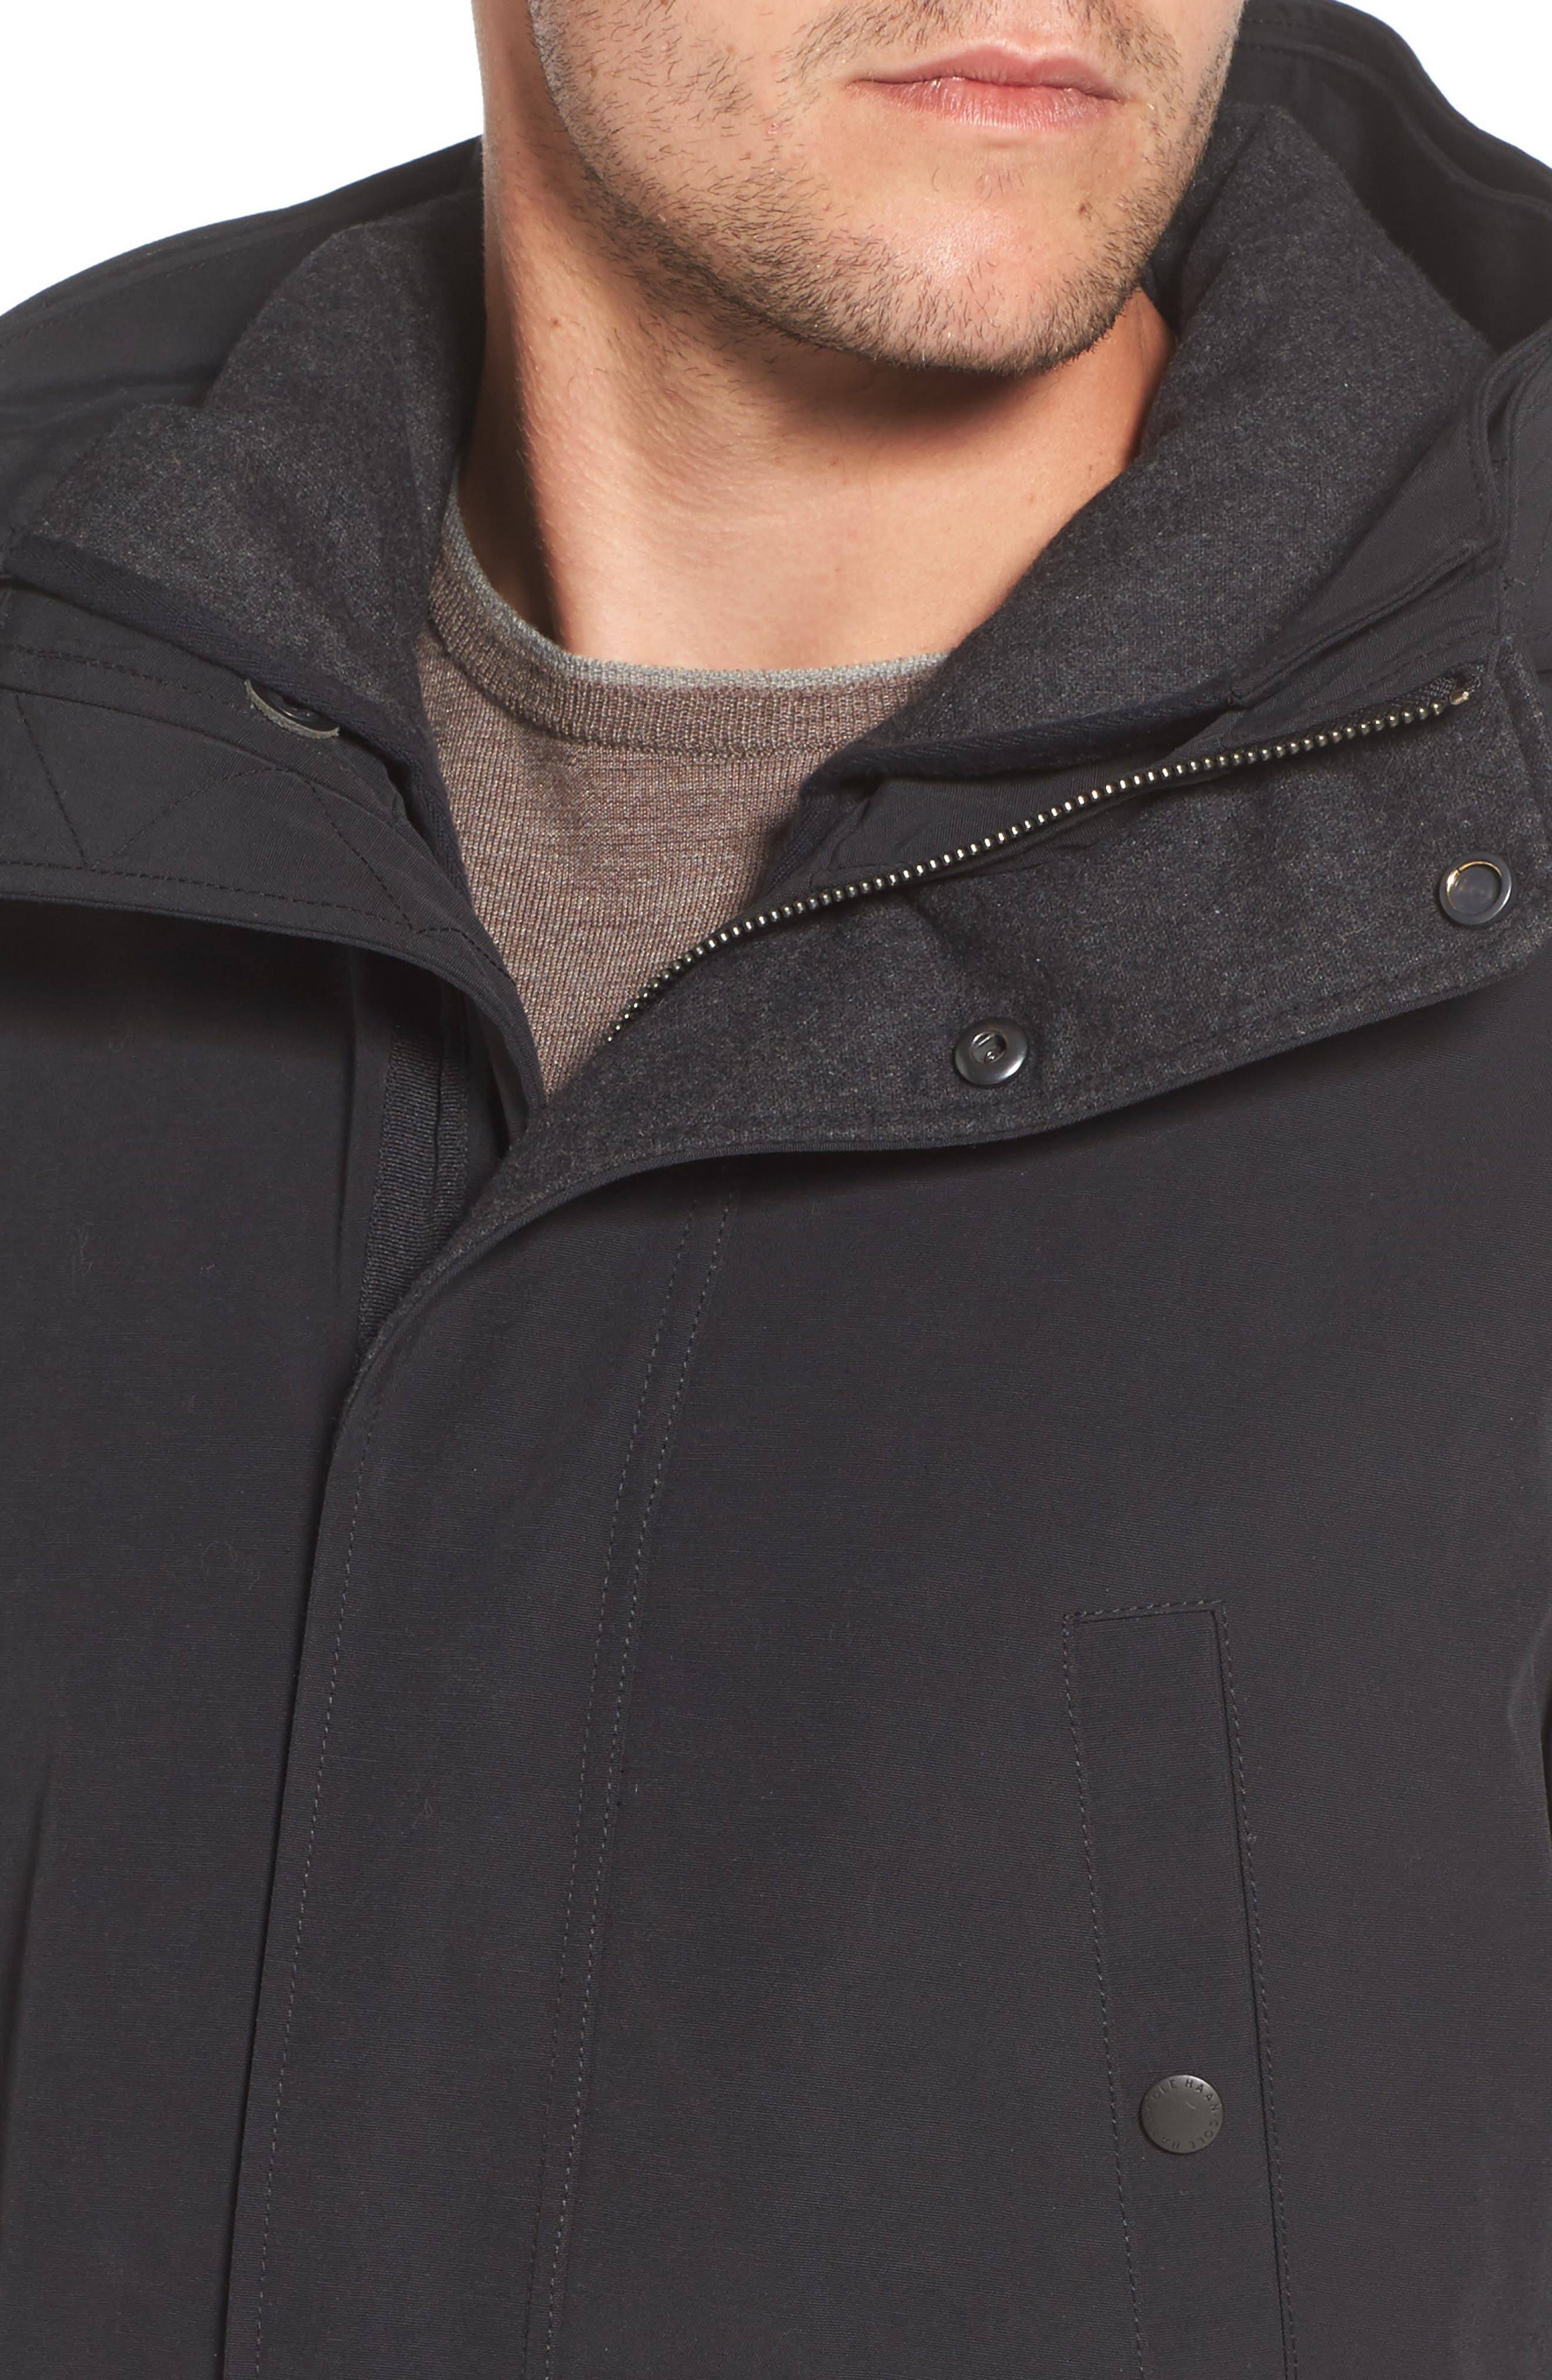 Water Repellent 3-in-1 Utility Jacket,                             Alternate thumbnail 4, color,                             001